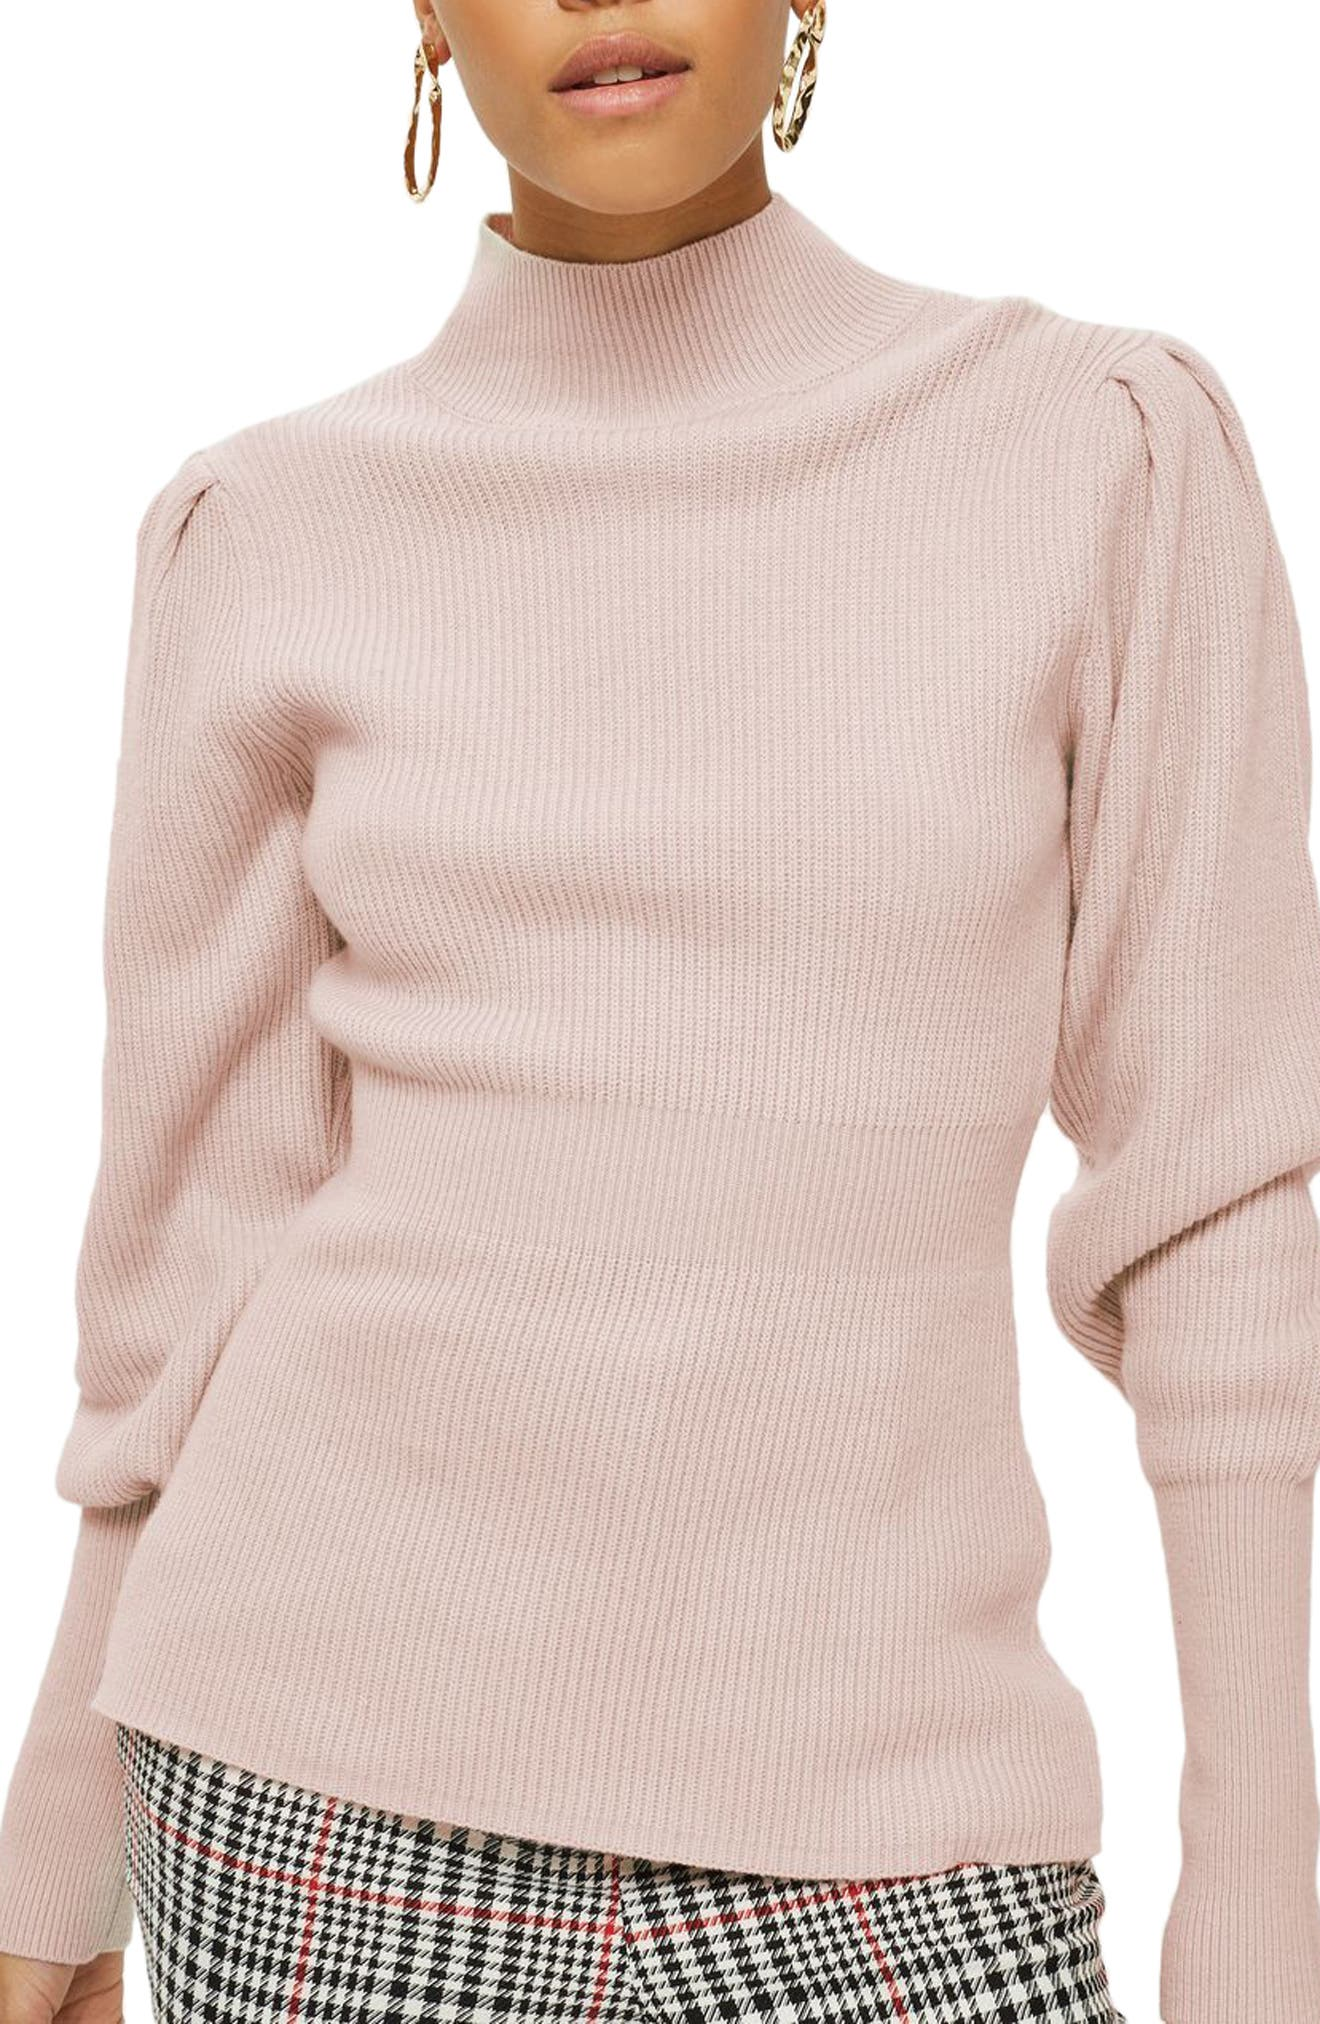 Puff Sleeve Funnel Neck Sweater,                             Main thumbnail 1, color,                             680